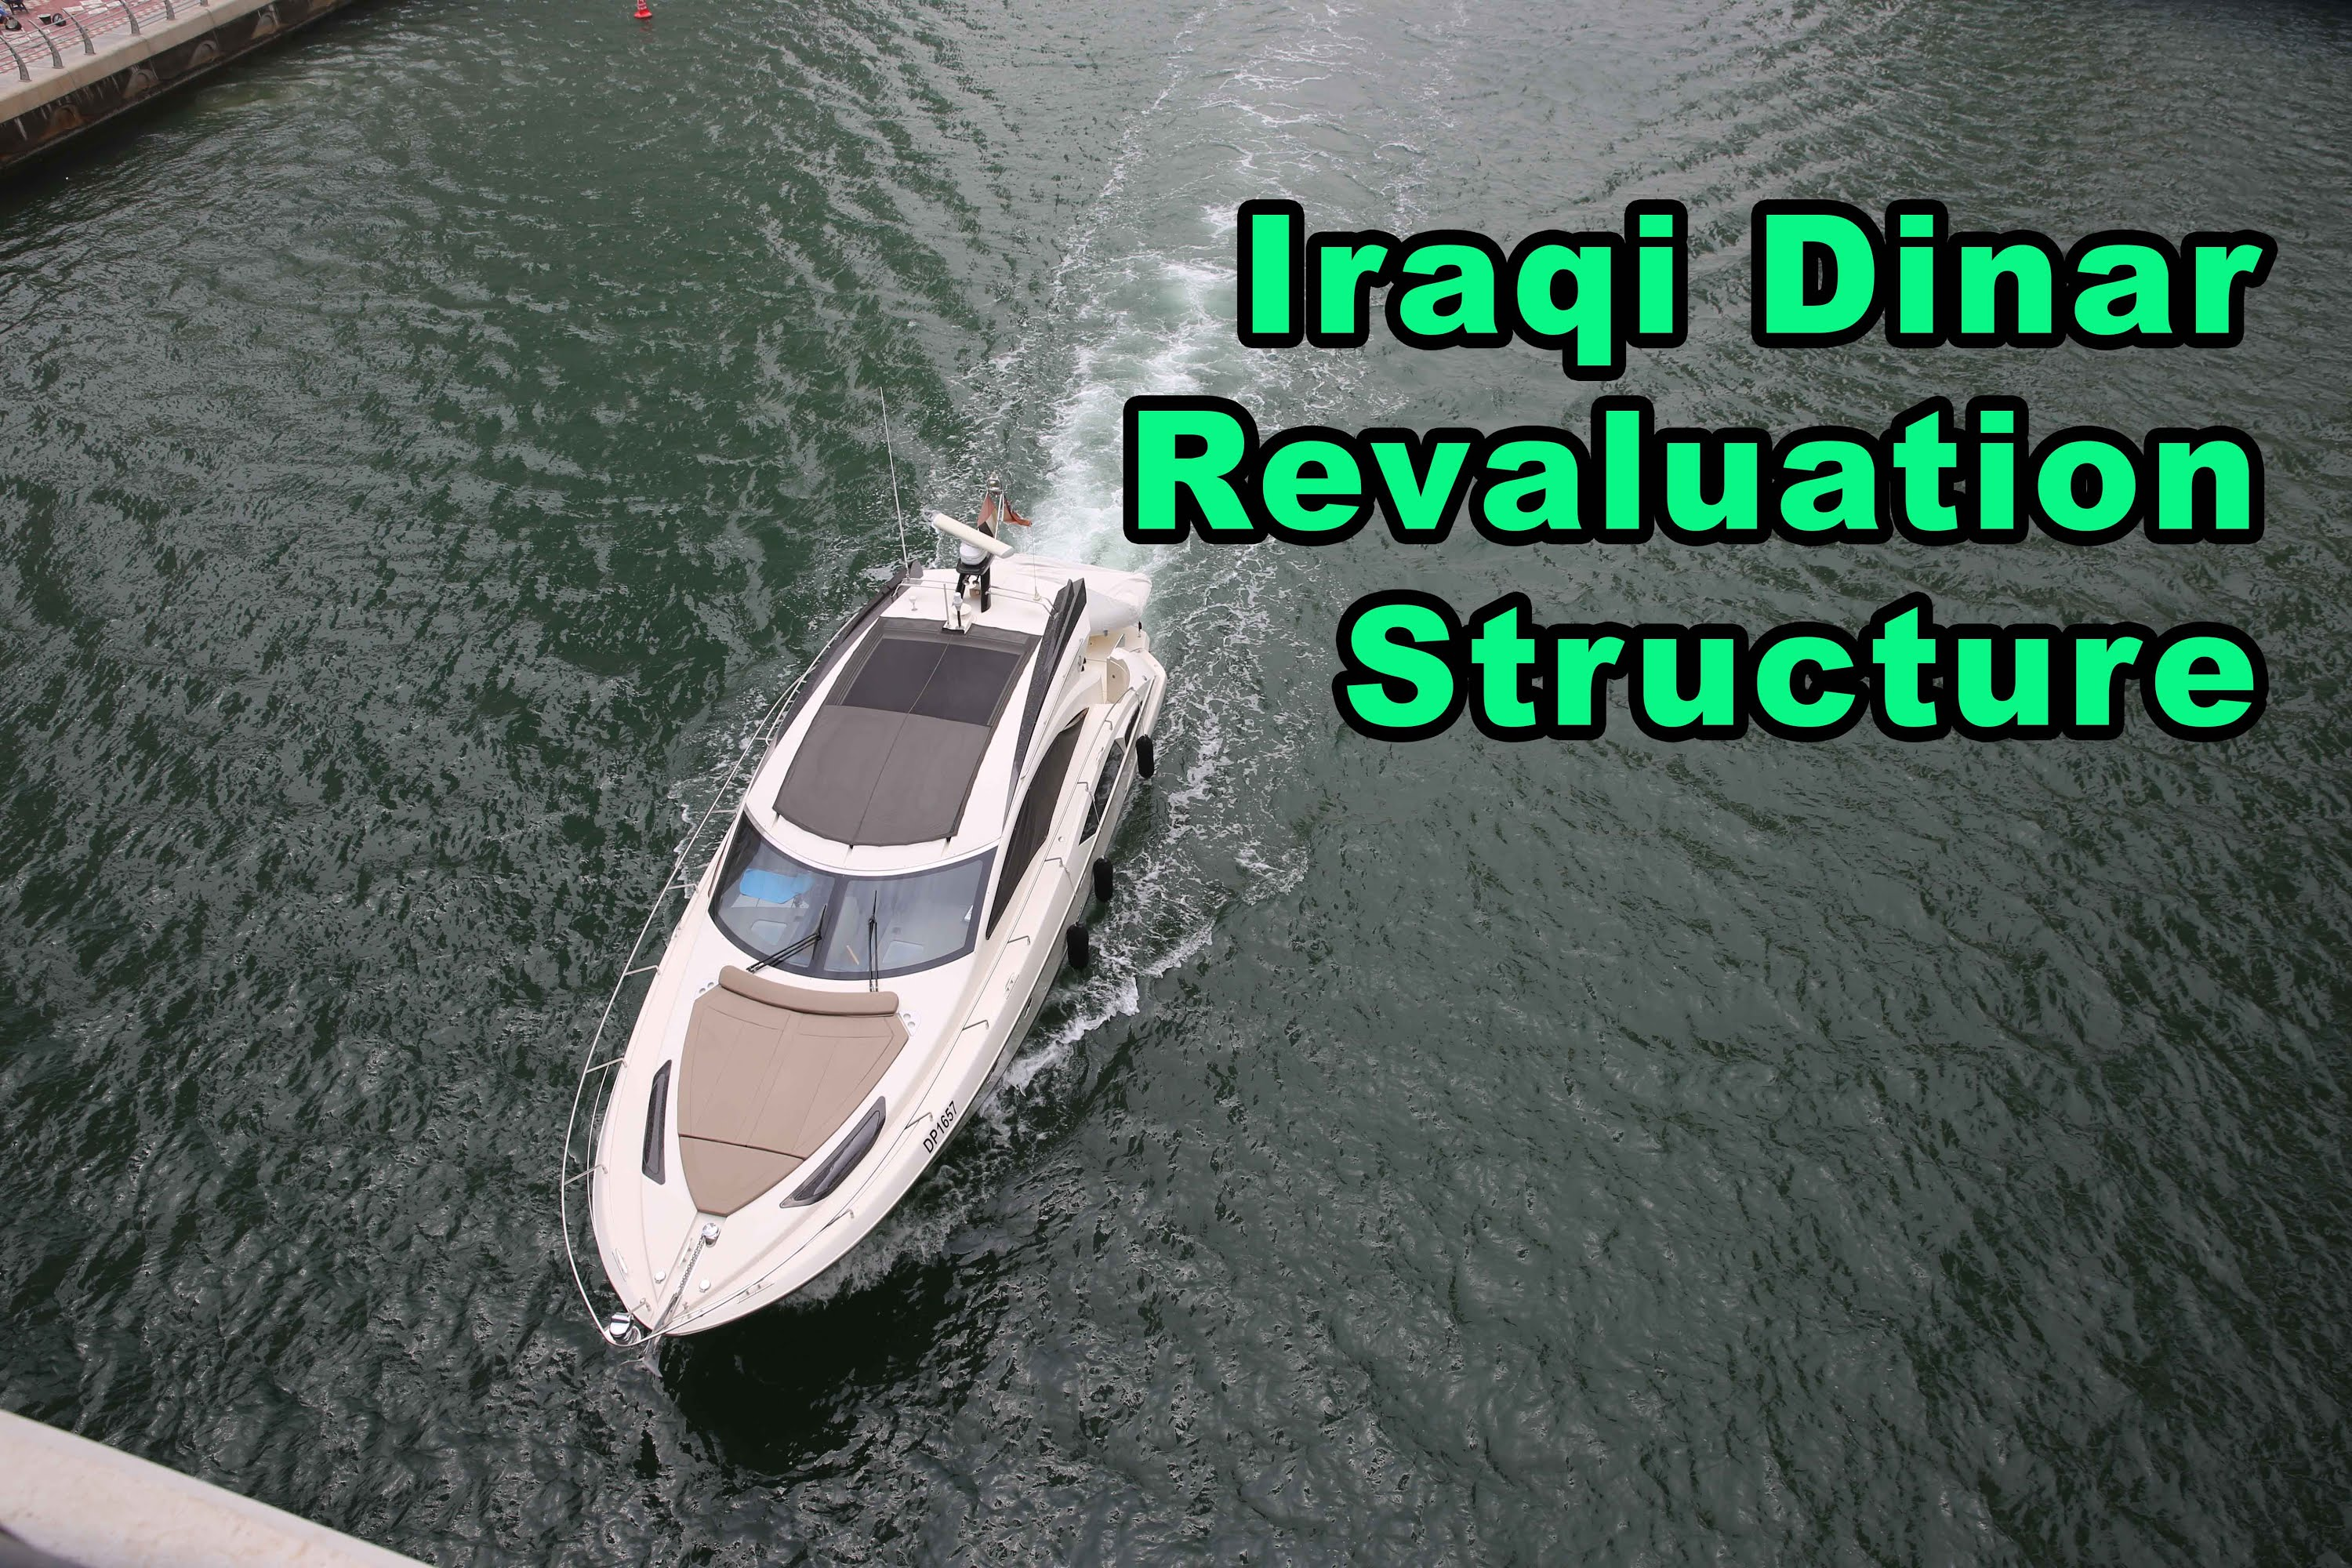 Disputes Arguments About Revaluation When Will Iraqi